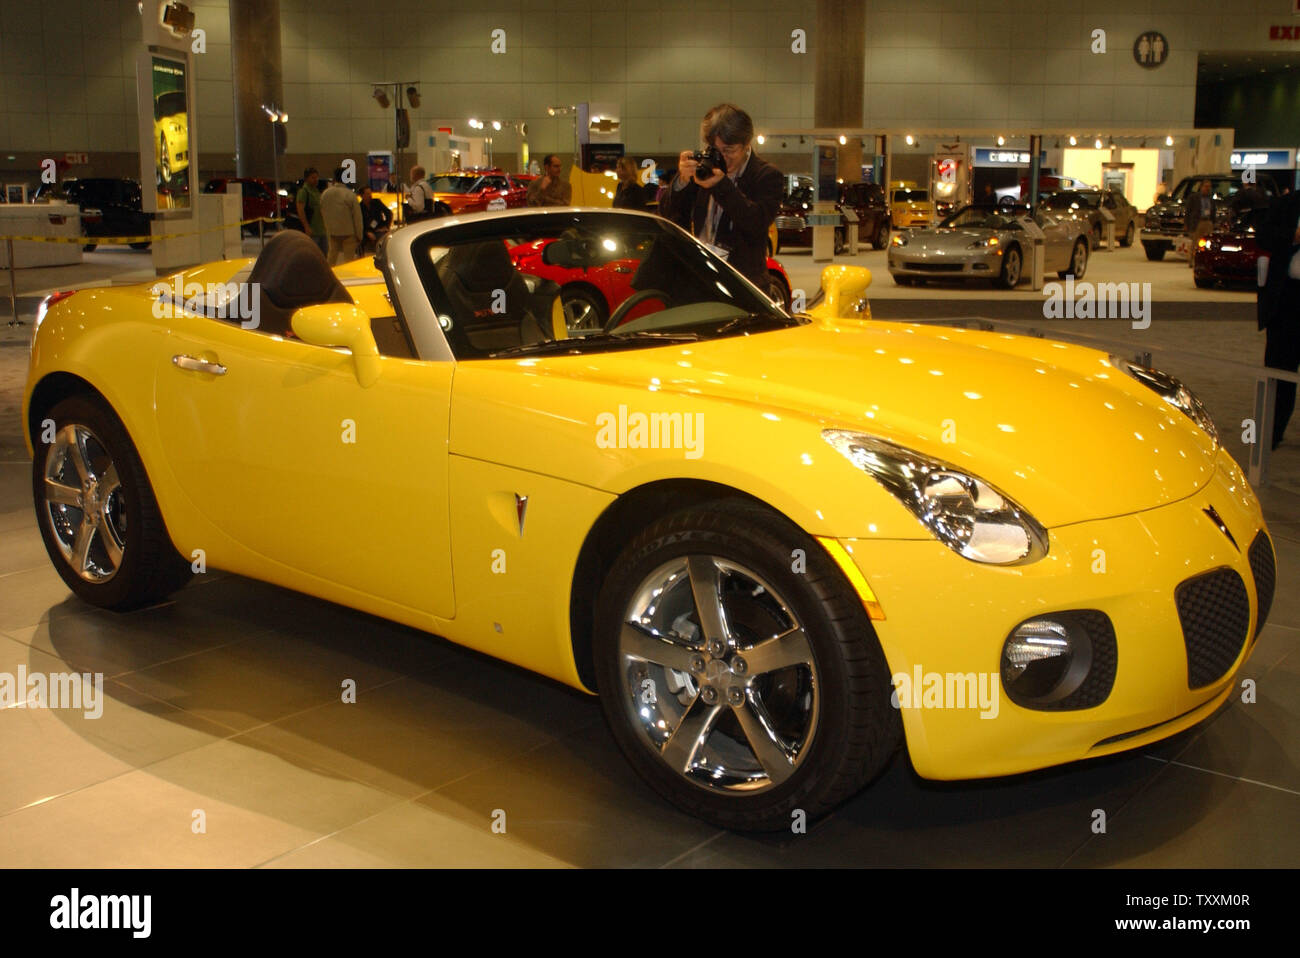 Pontiac Solstice High Resolution Stock Photography And Images Alamy